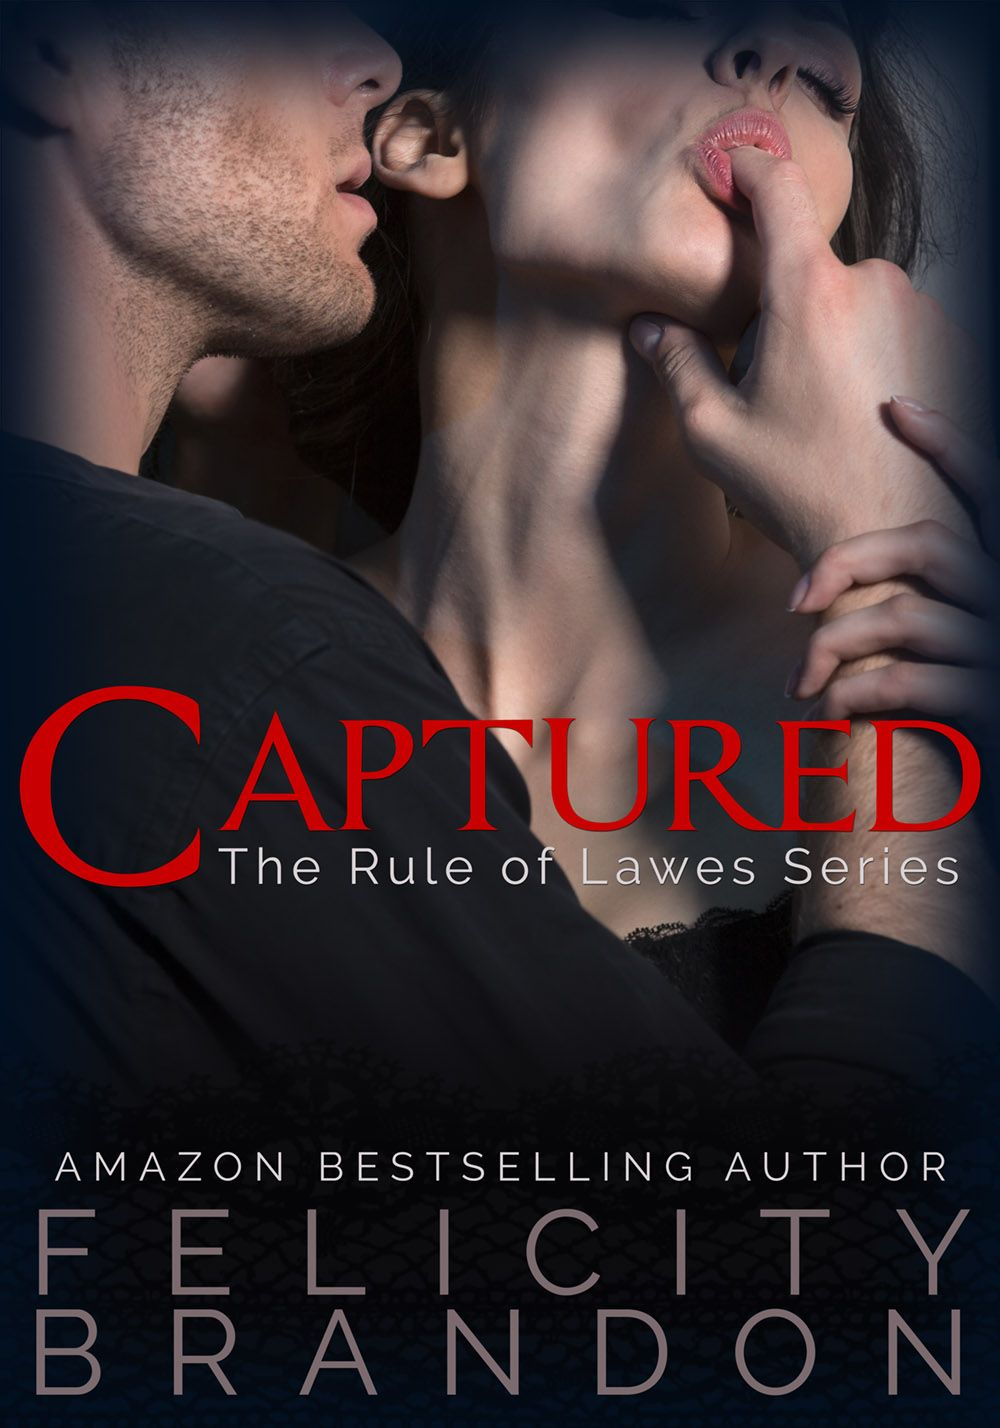 Get Captured… Now!